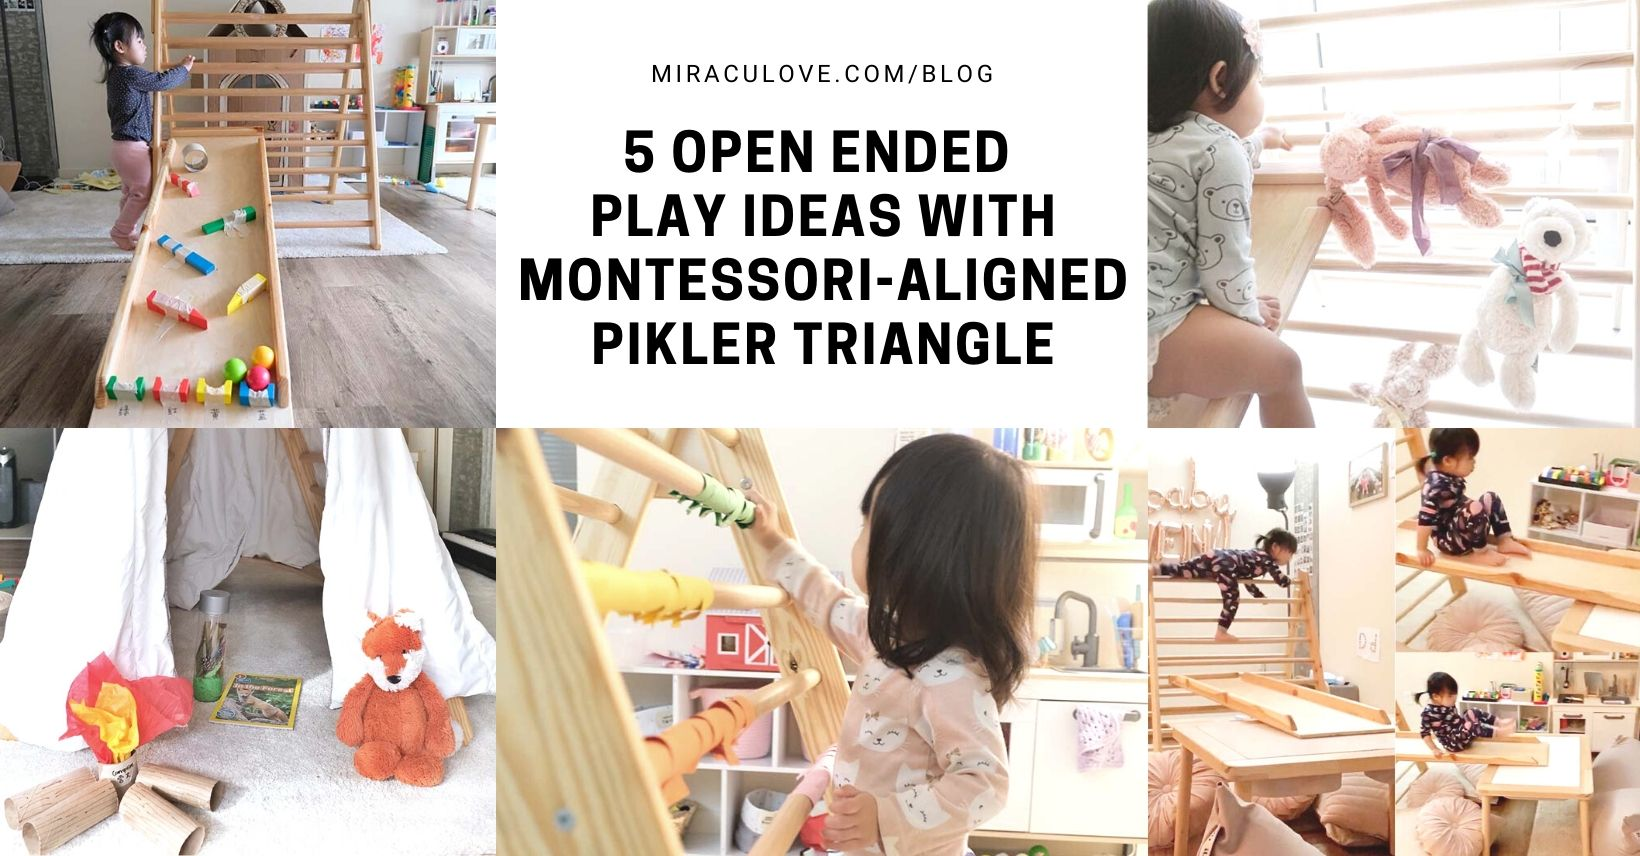 5 Open Ended Play Ideas with Montessori Aligned Pikler Triangle